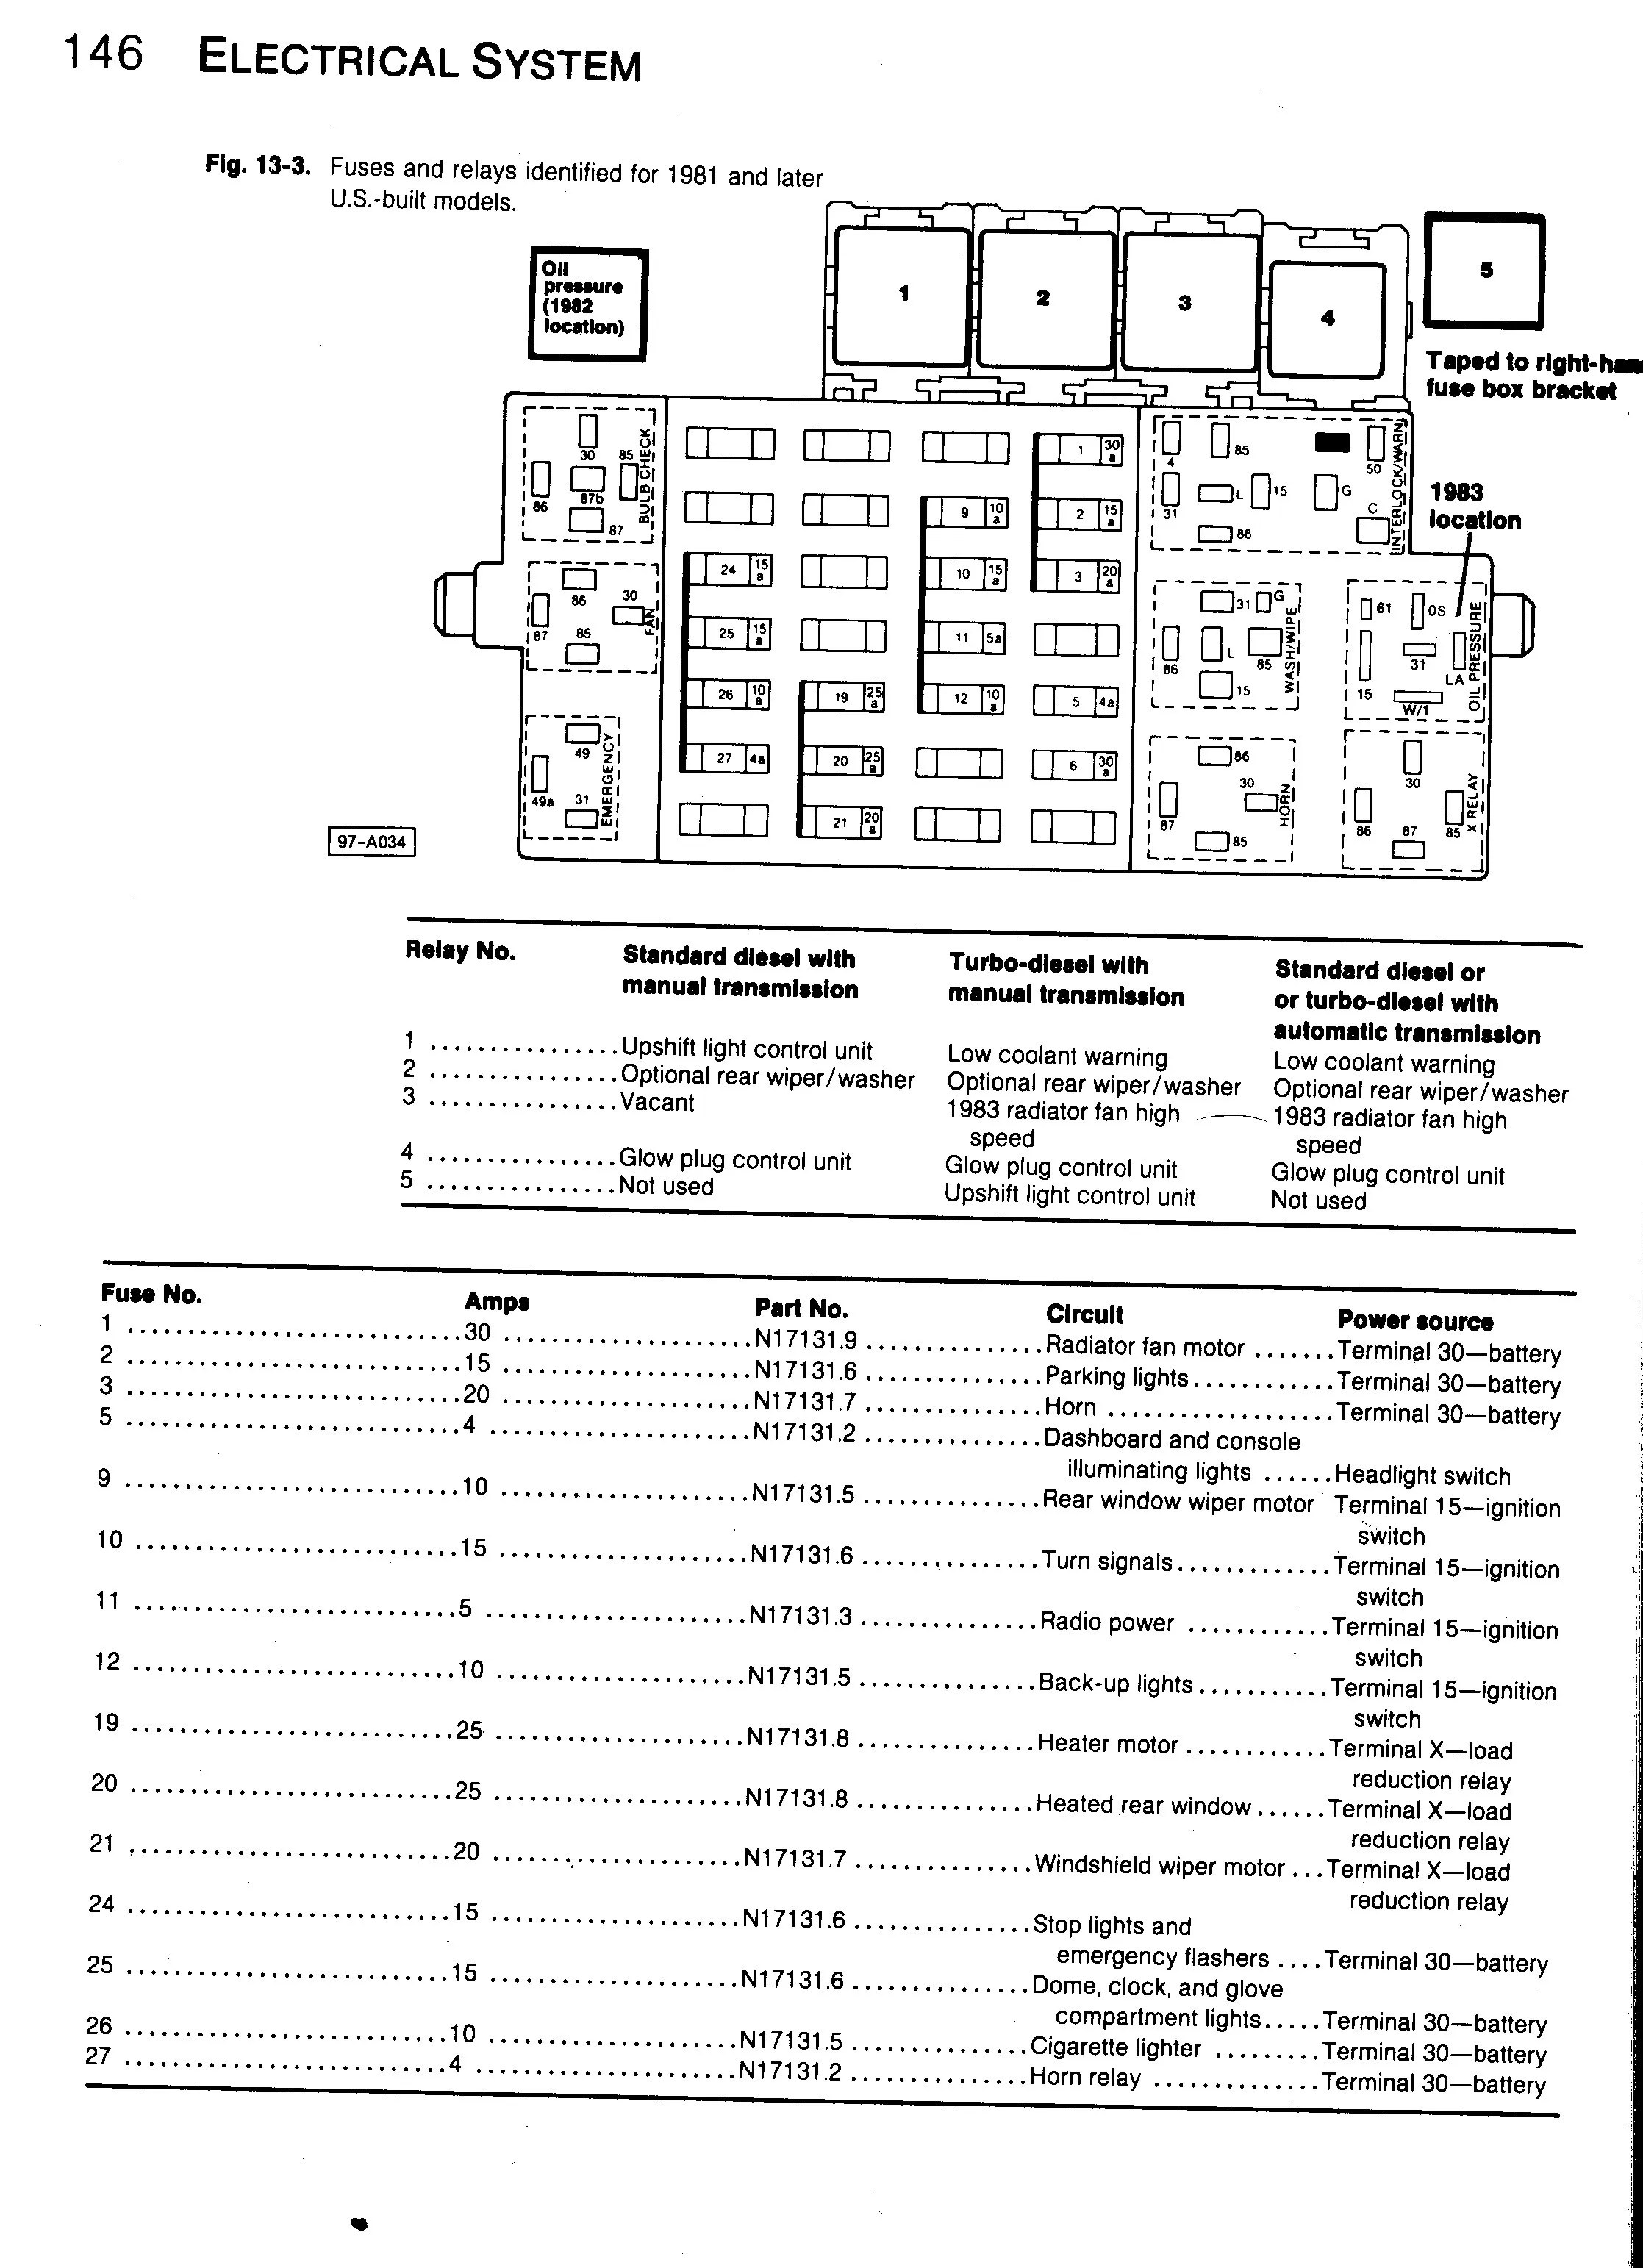 volkswagen jetta 2011 fuse box diagram